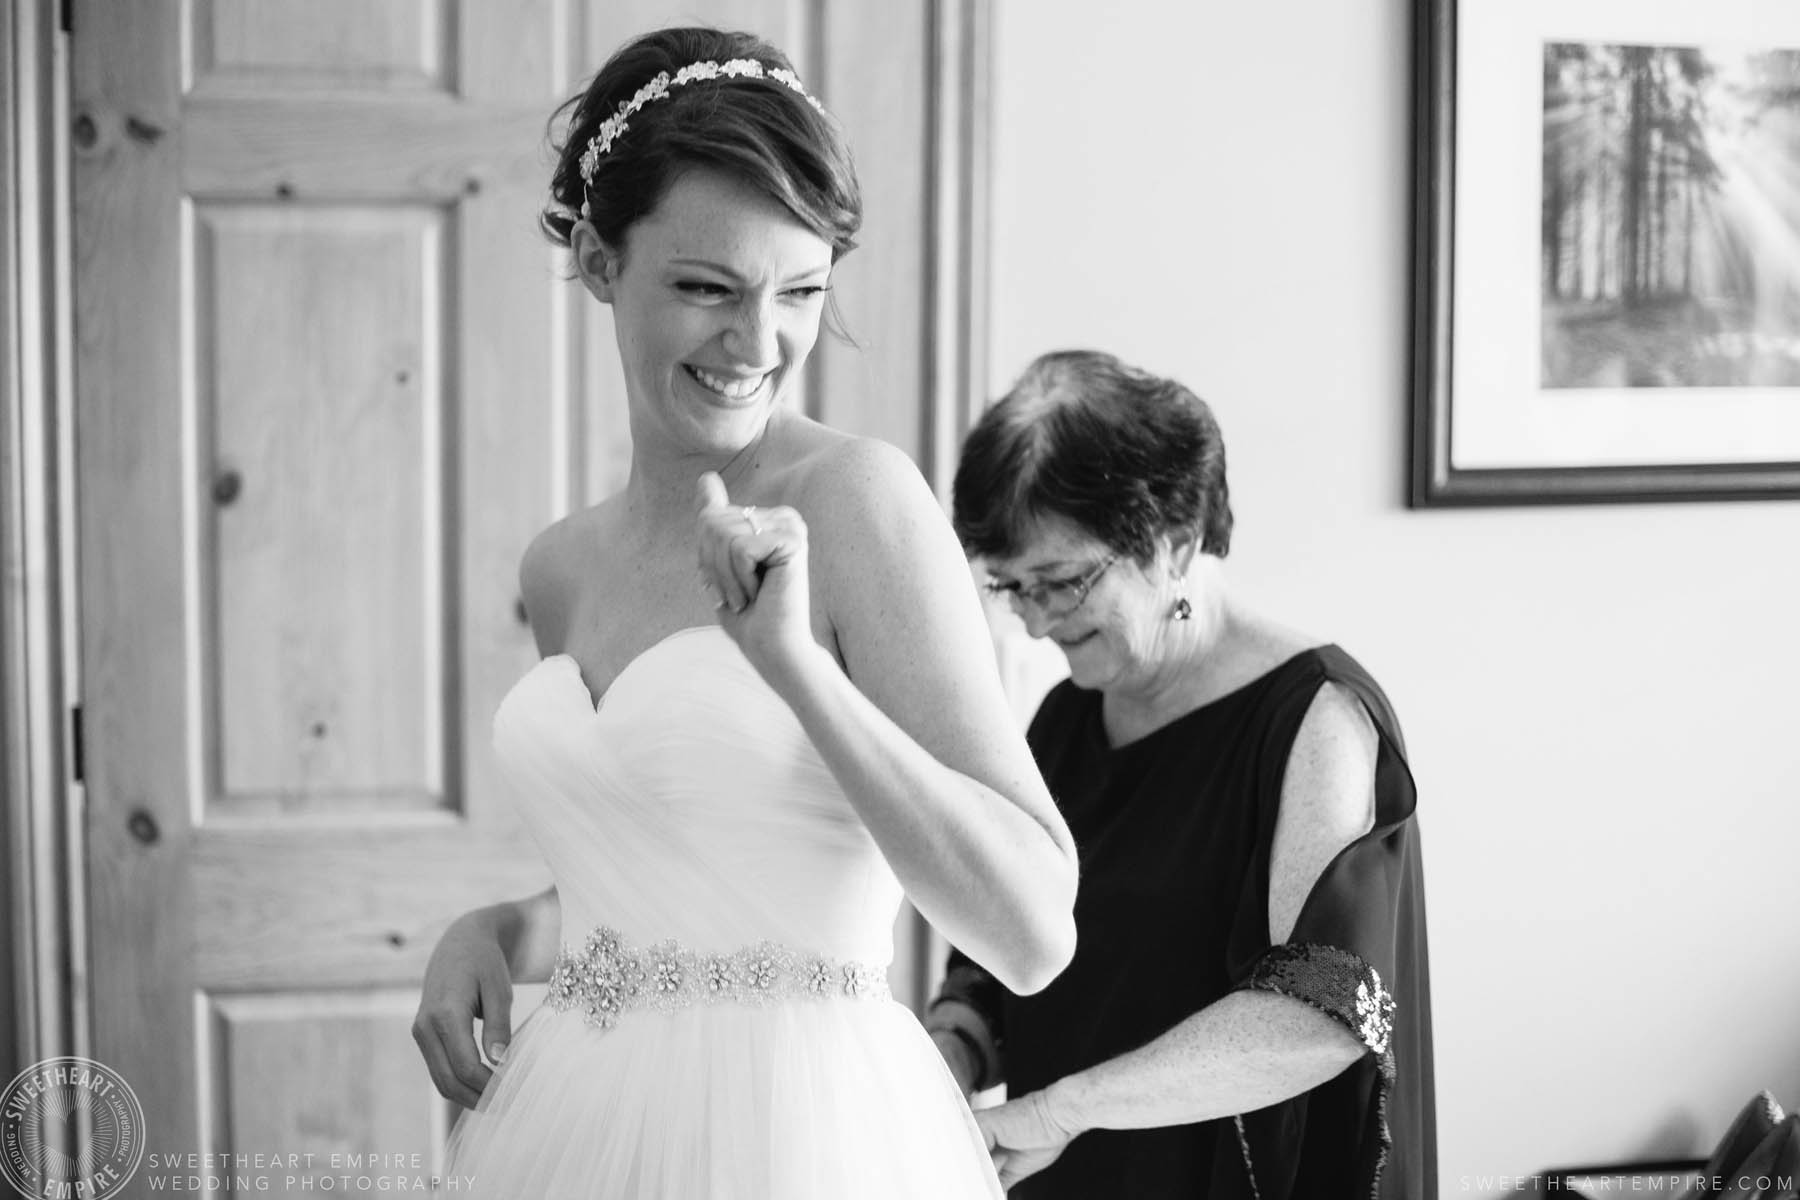 Bride gets emotional while her mom does up her wedding dress at this Rockway Vineyards wedding in Niagara.